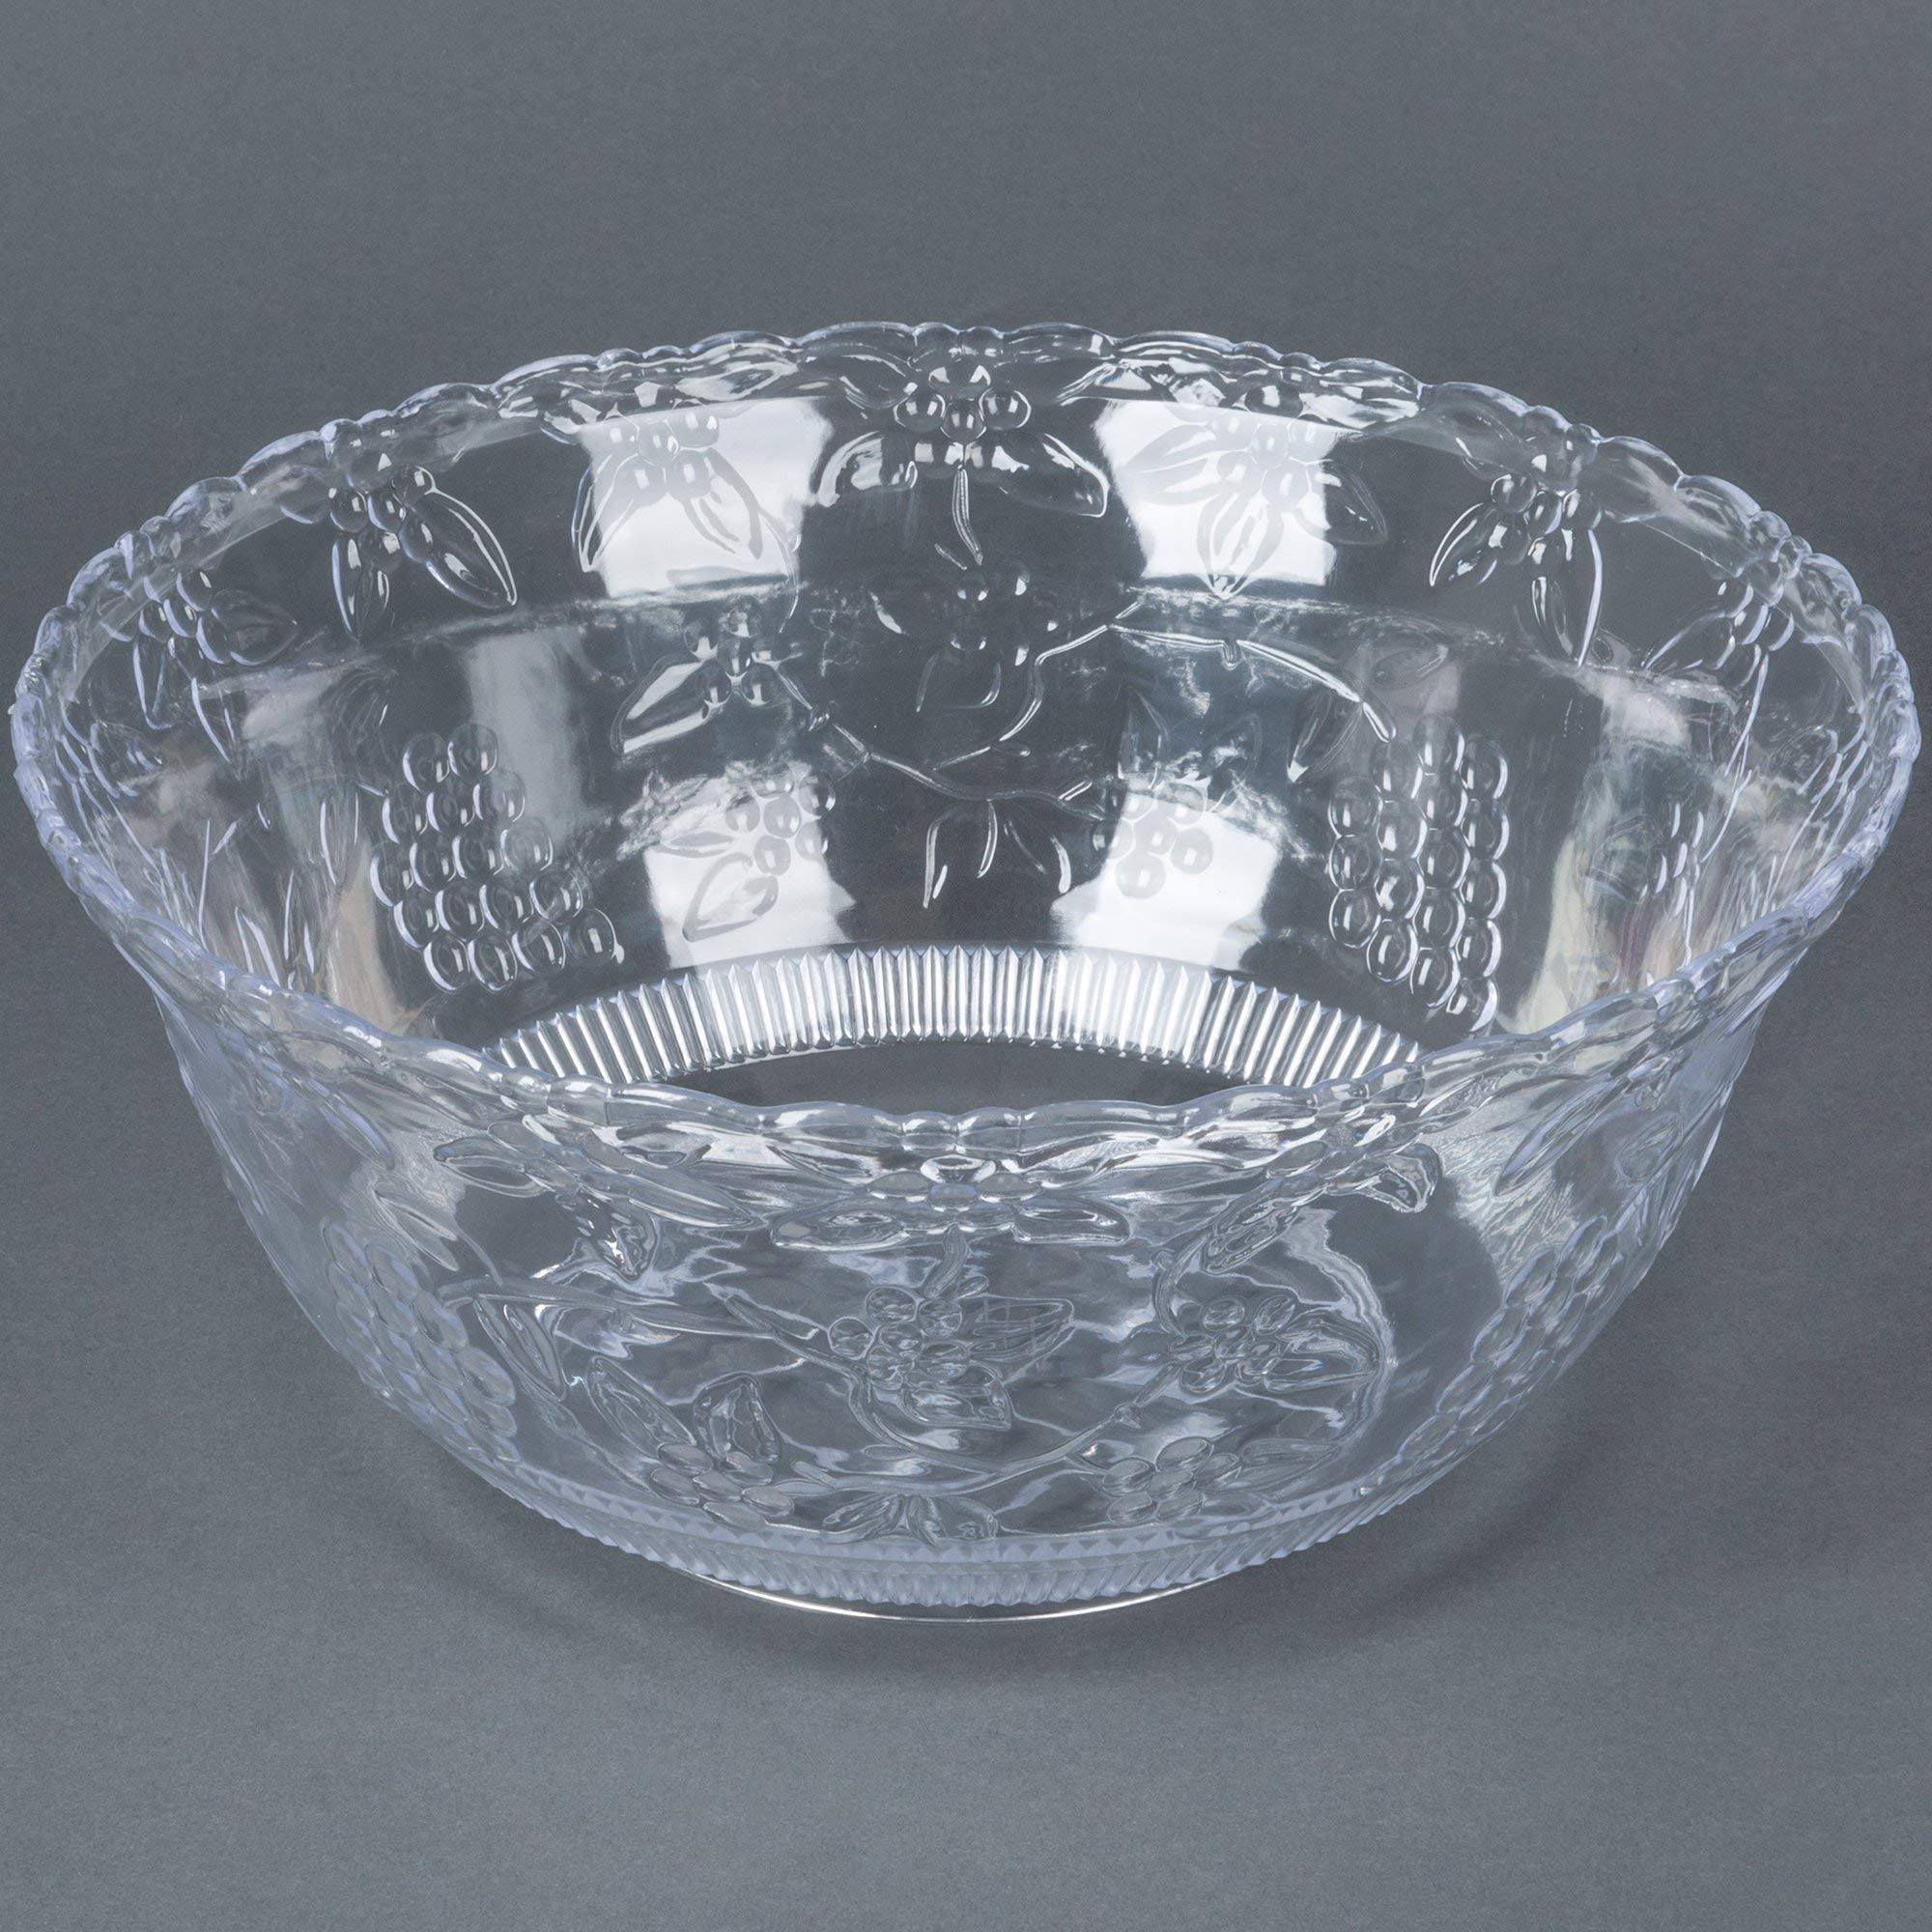 TableTop King Platter Pleasers 3508 8 Qt. Clear Plastic Punch Bowl